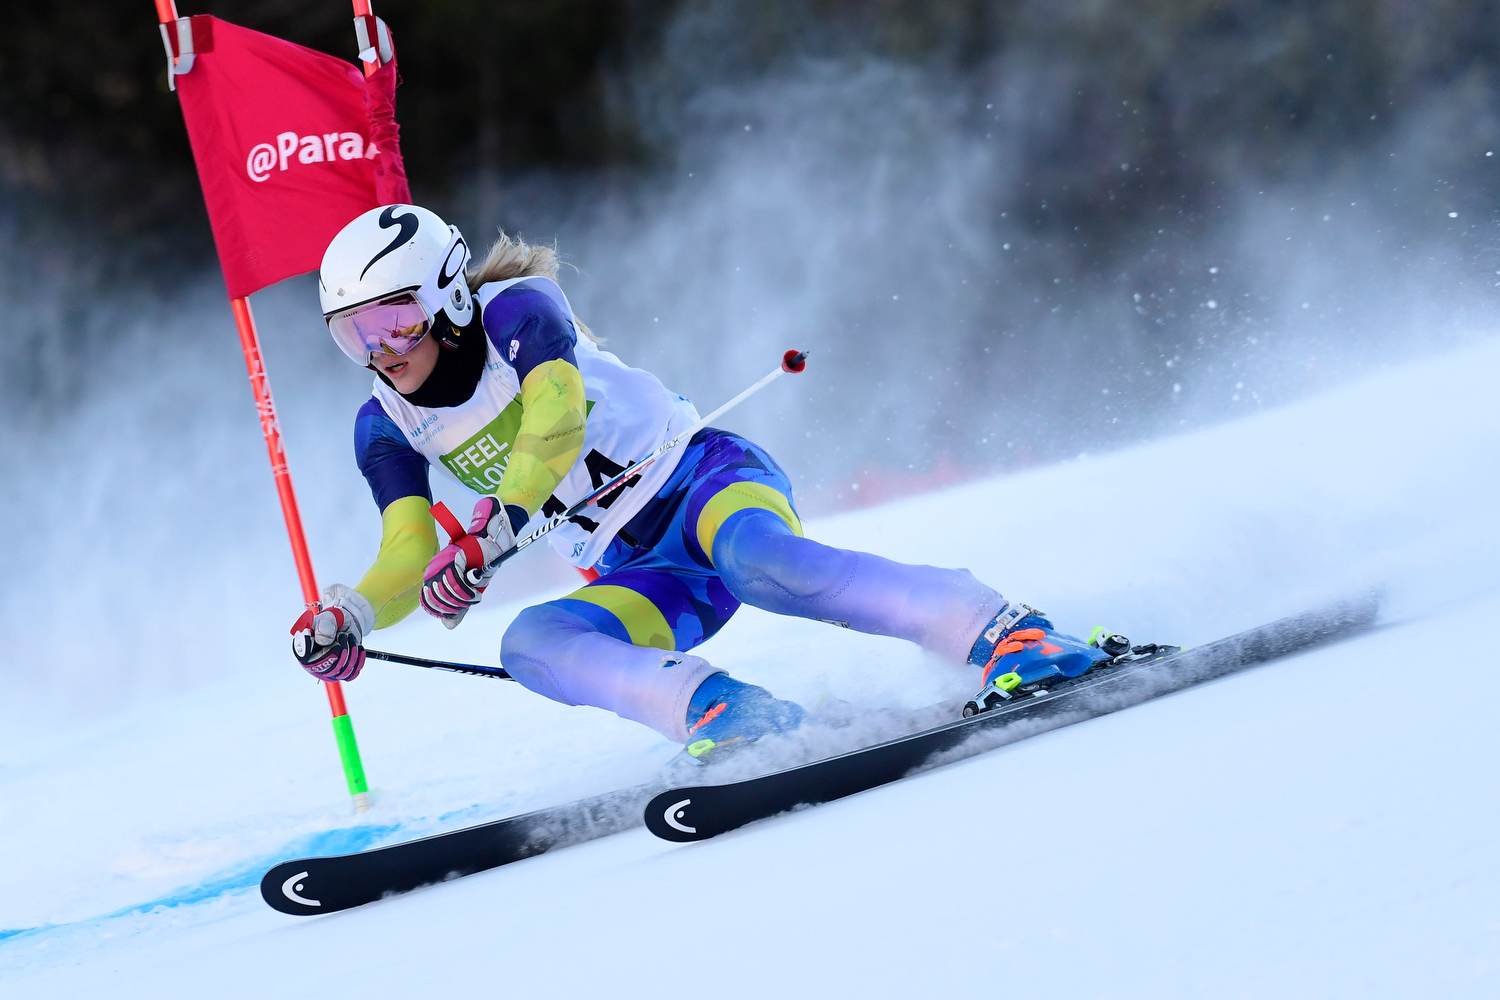 Alpine Skiing: What does it consist of? How many disciplines does it have?